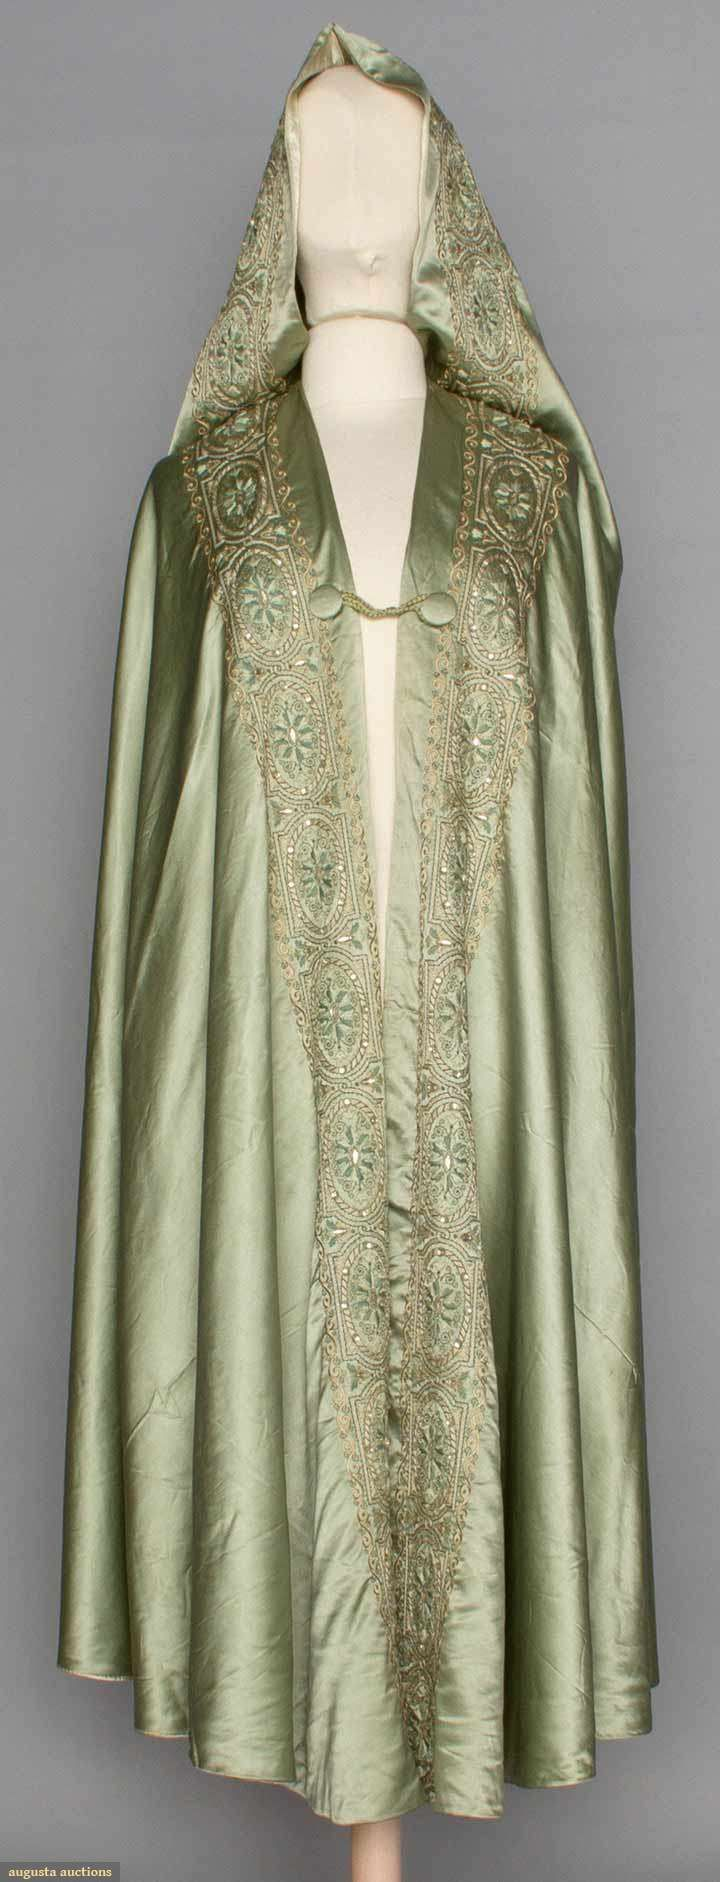 EMBROIDERED LIBERTY BURNOOSE, c. 1910. Doesn't this give you some beautiful ideas for a cape? Love the simple closure.